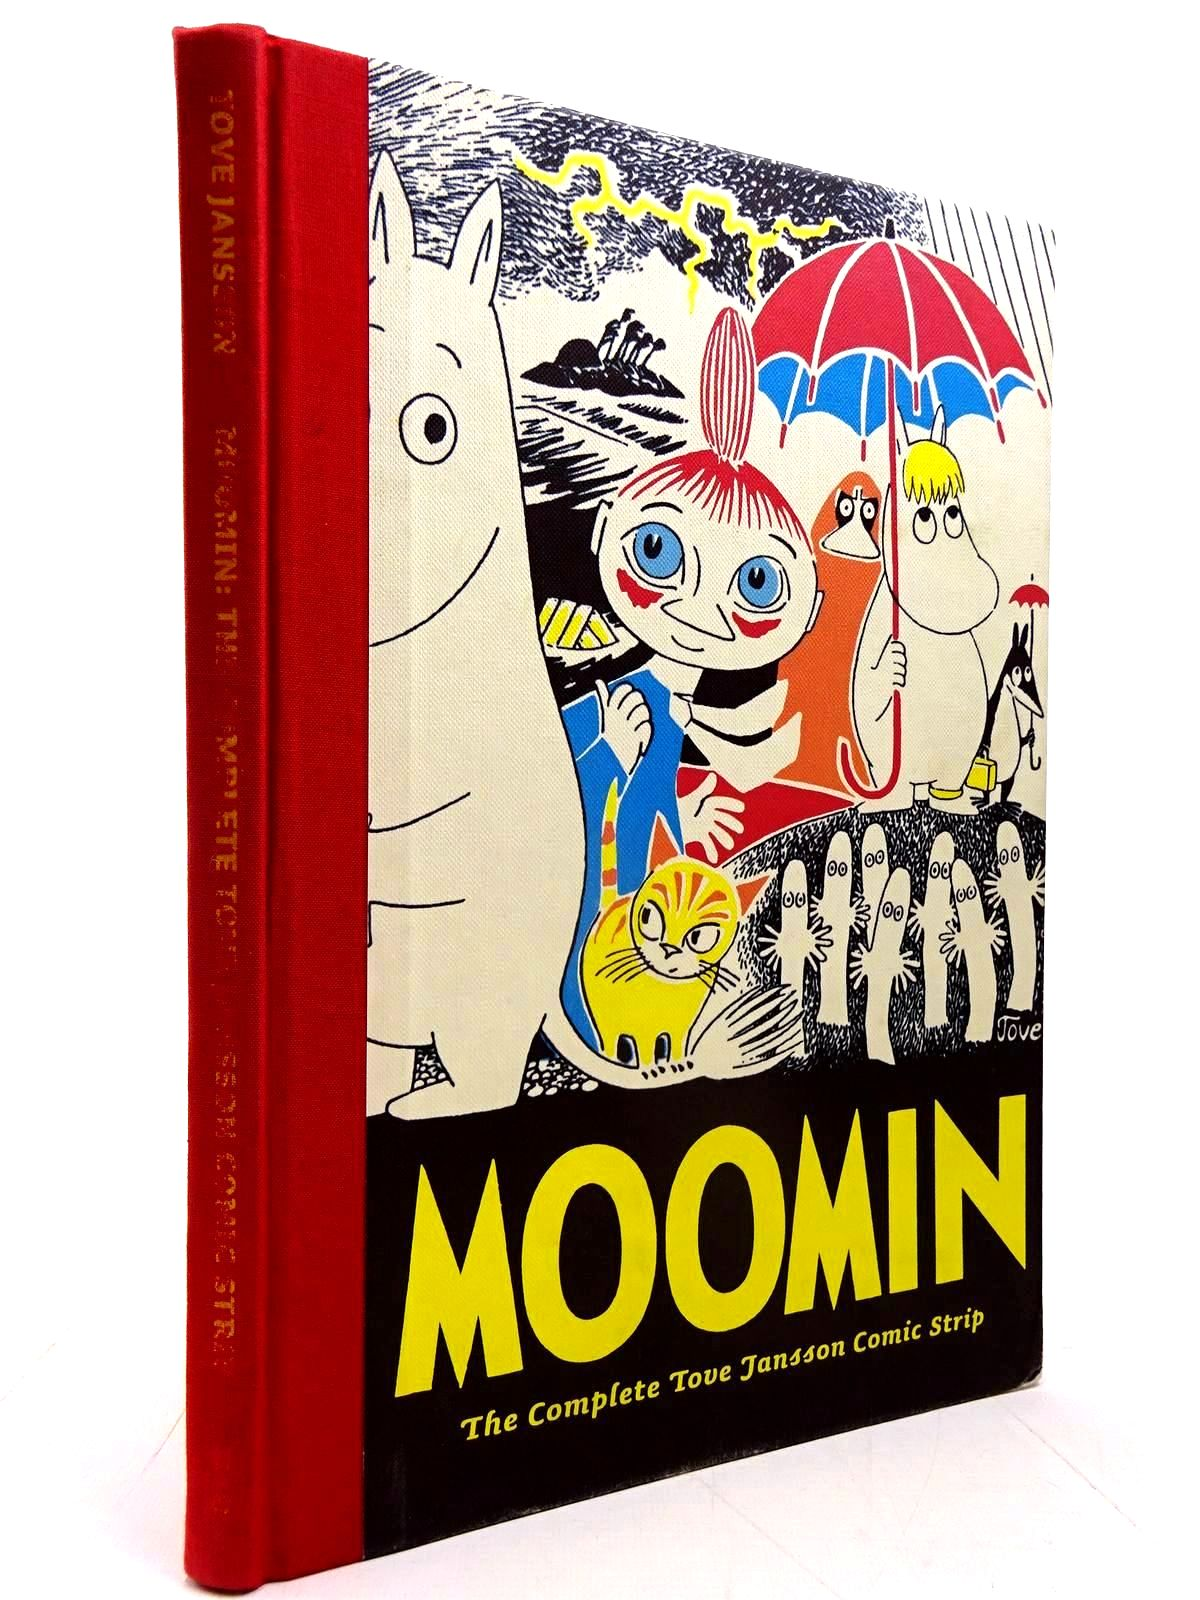 Photo of MOOMIN THE COMPLETE TOVE JANSSON COMIC STRIP written by Jansson, Tove illustrated by Jansson, Tove published by Drawn & Quarterly (STOCK CODE: 2130615)  for sale by Stella & Rose's Books